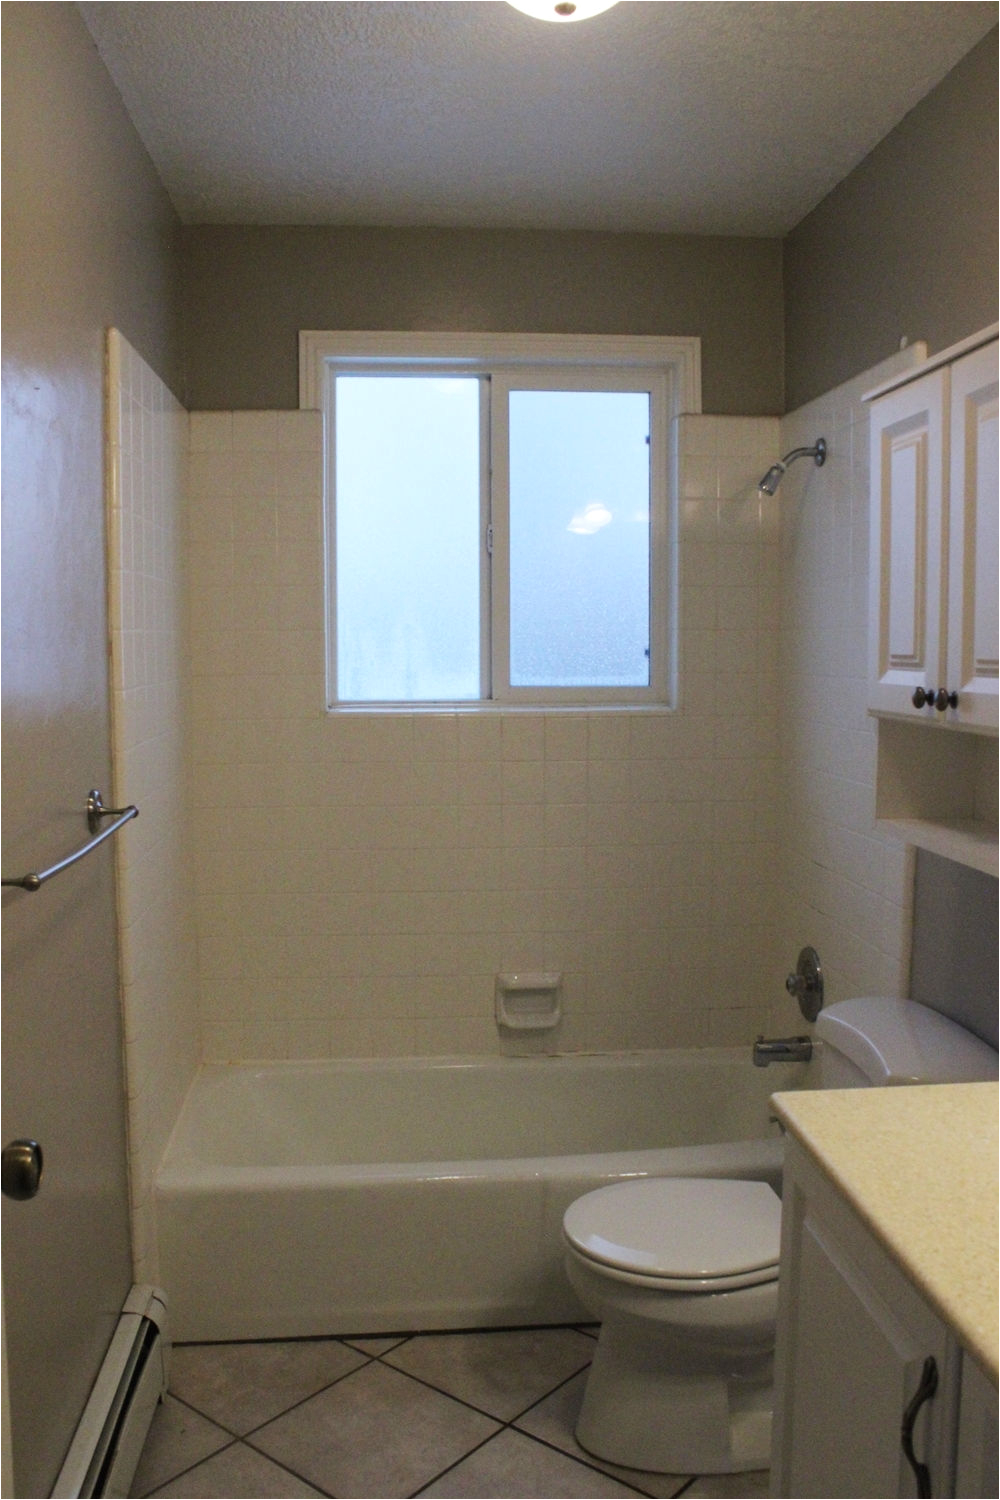 Bathtubs with Tile Surround How to Remove A Tile Tub Surround with Metal Mesh